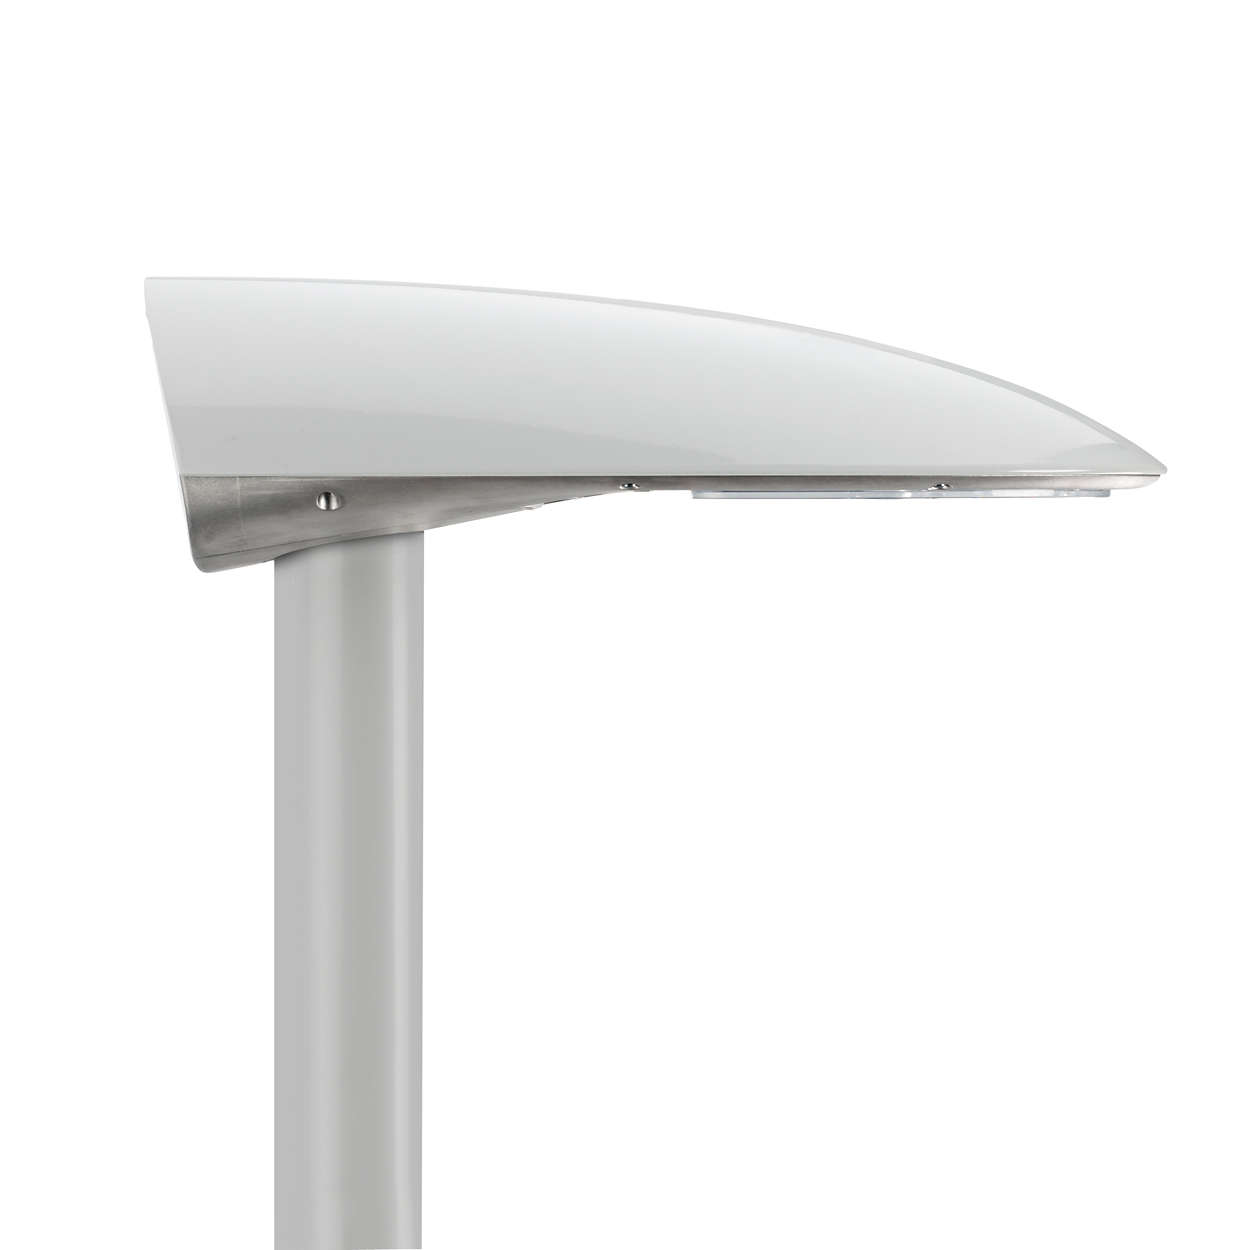 Iridium gen3 LED – Den intelligenta plug and play-armaturen för vägar